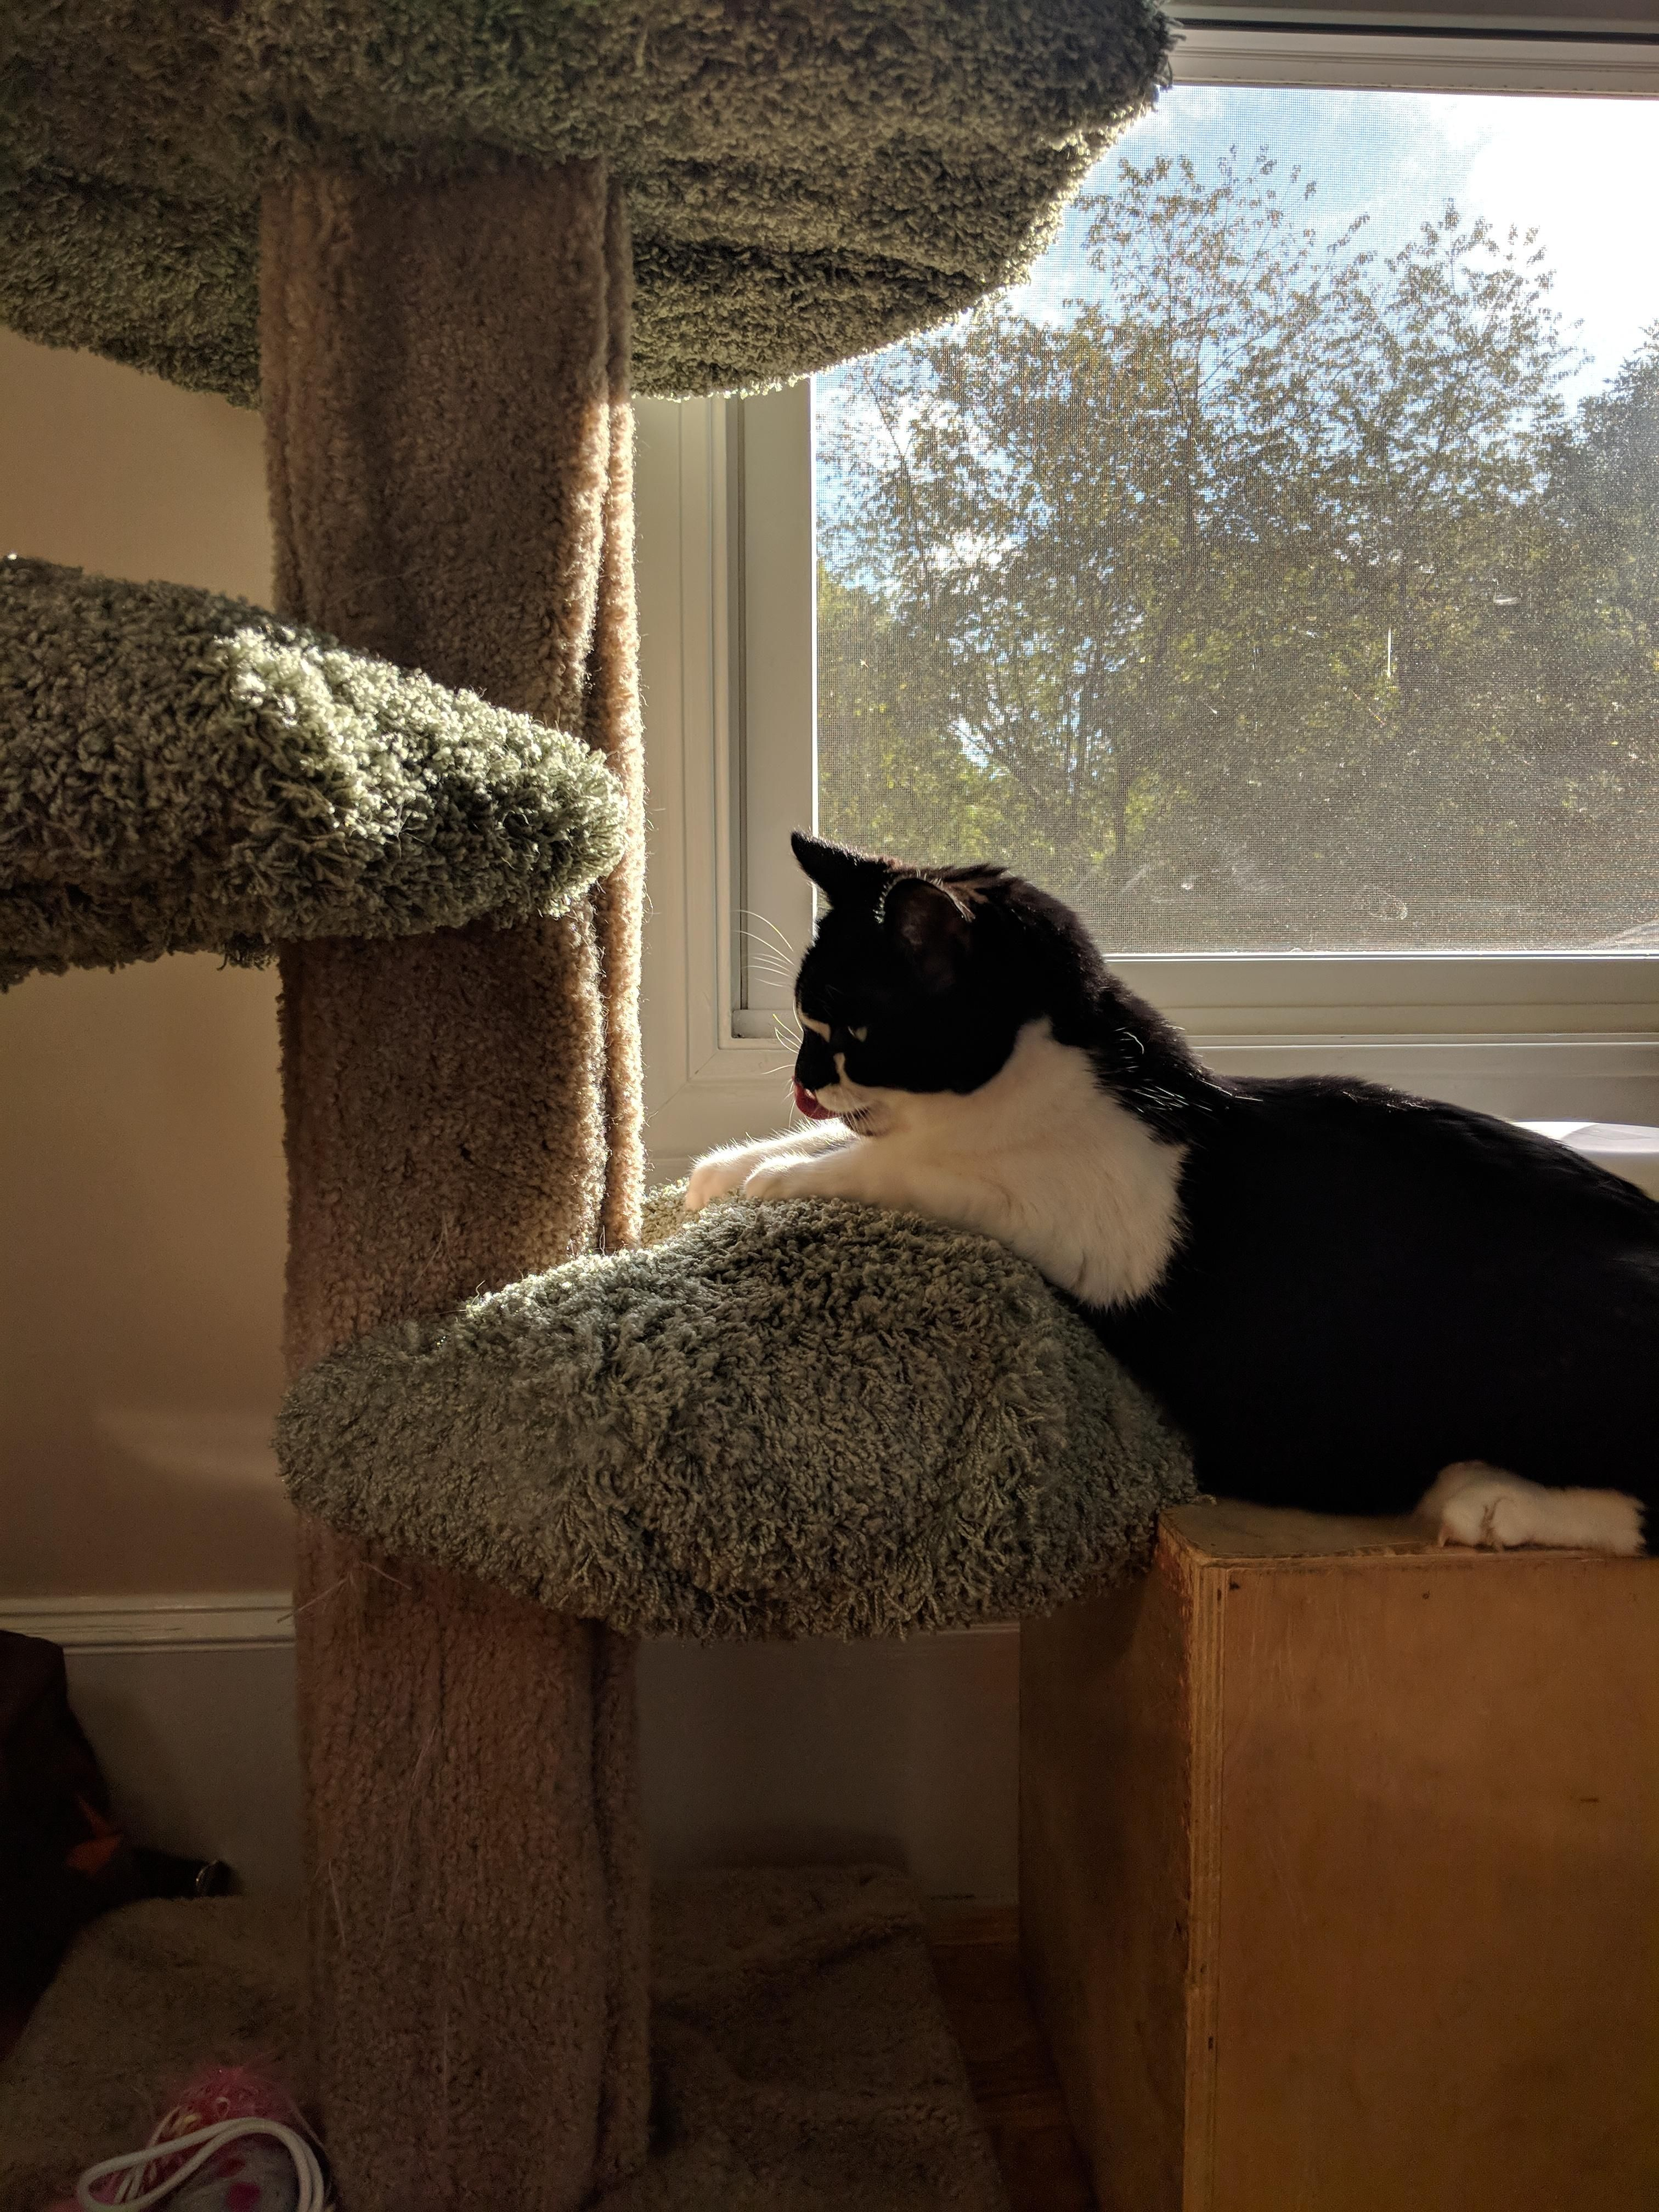 Had this cat tree for over 10 years had this beutiful